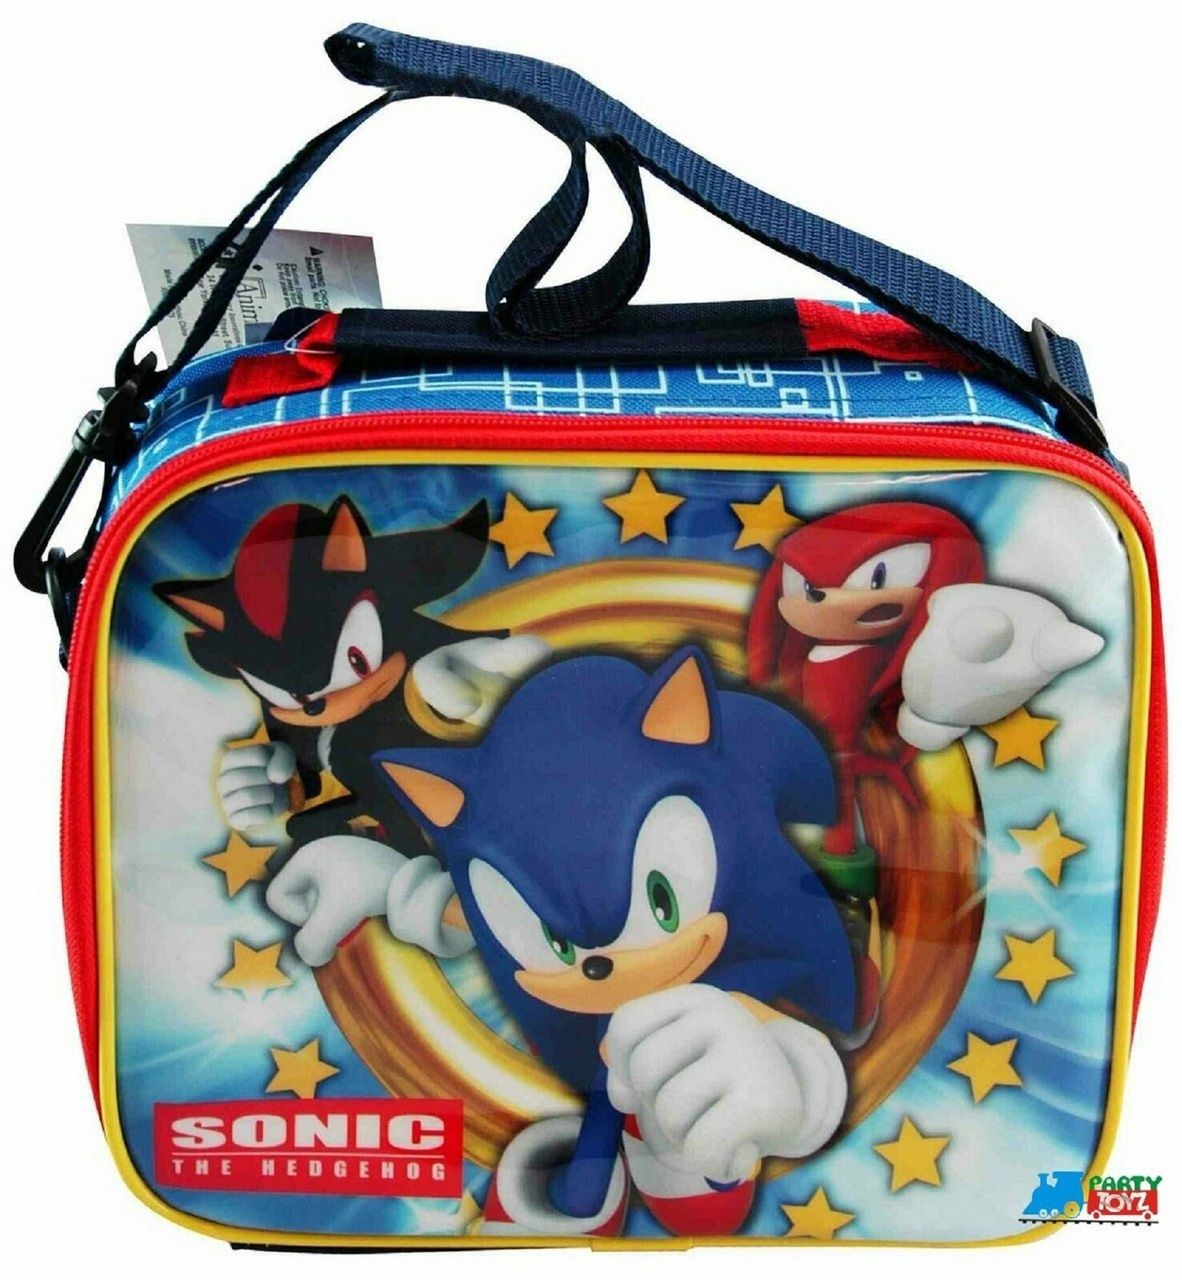 Lunch Box Sonic The Hedgehog Lunch Box Lunch Bag Lunch Box Containers